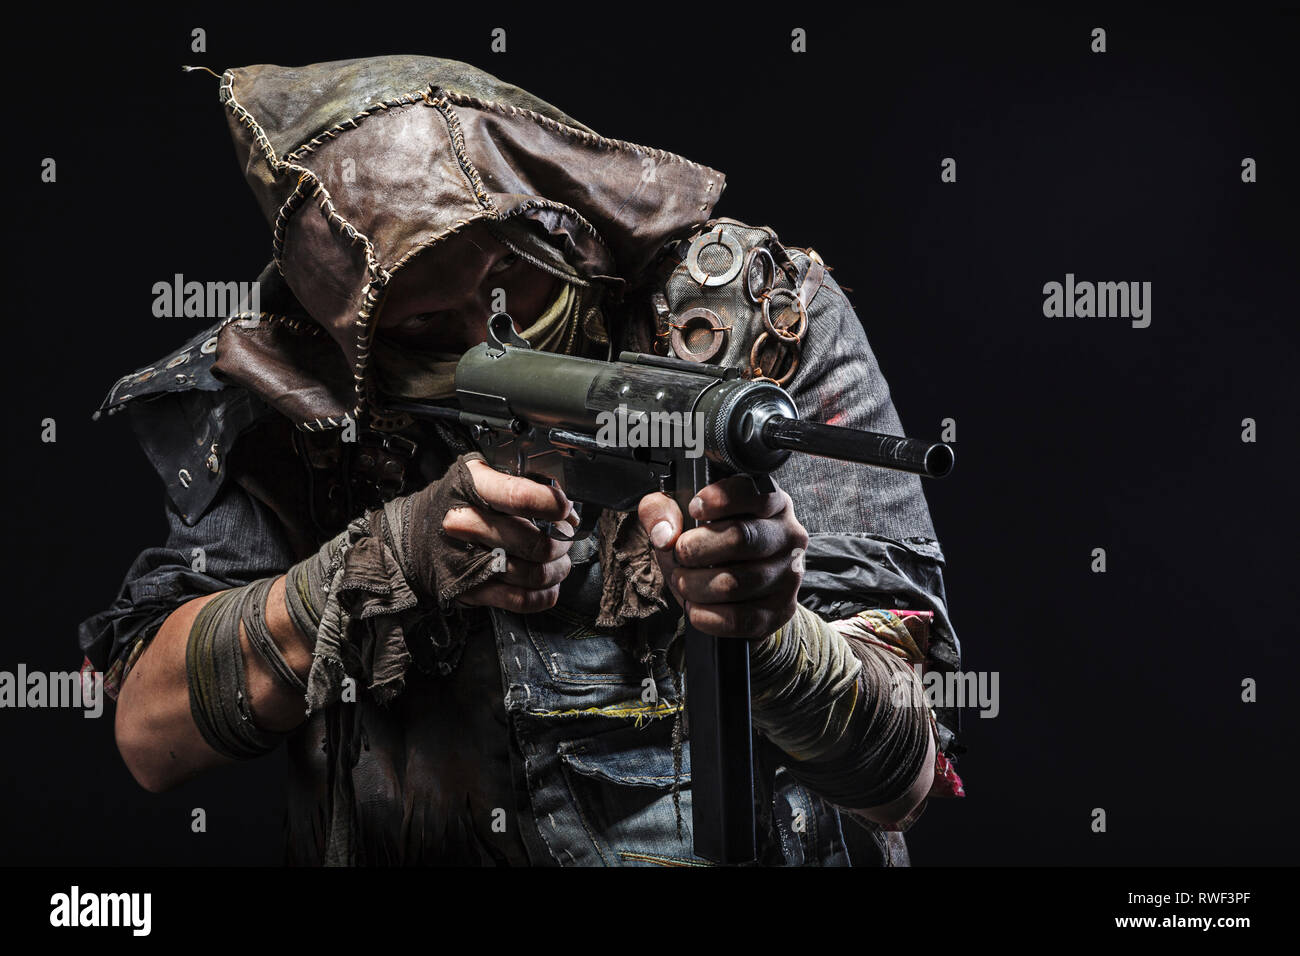 survivor with homemade weapons - Stock Image